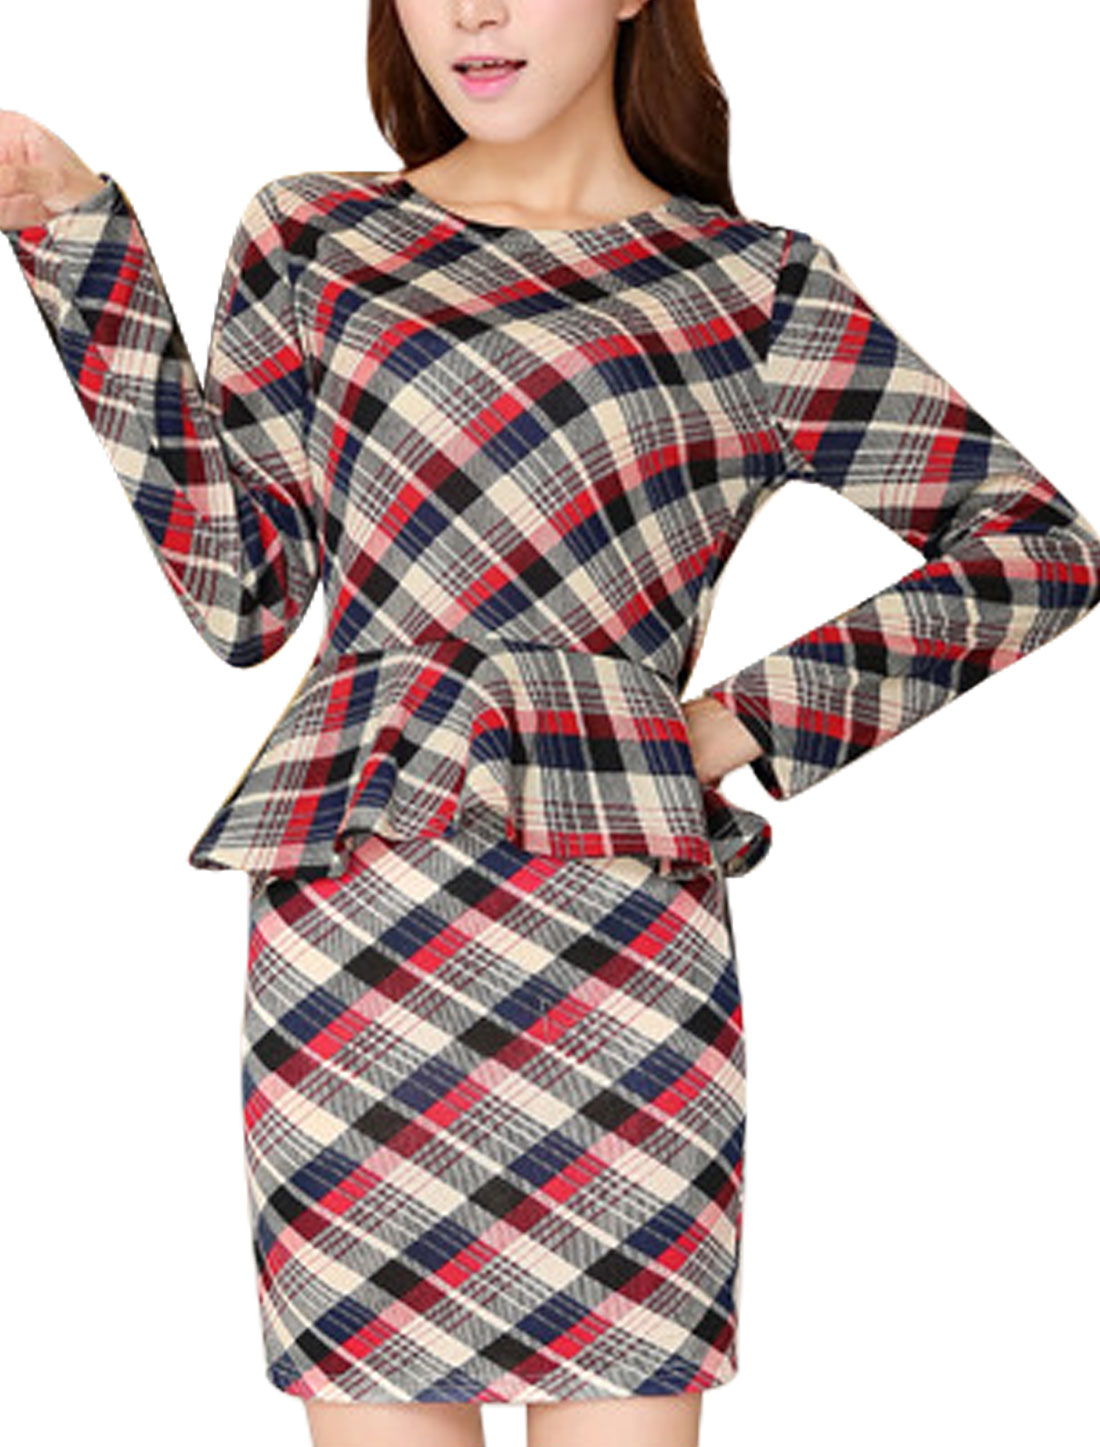 Ladies Plaids Pattern Long Sleeve Chic Light Peplum Knit Top Navy Blue Beige XS